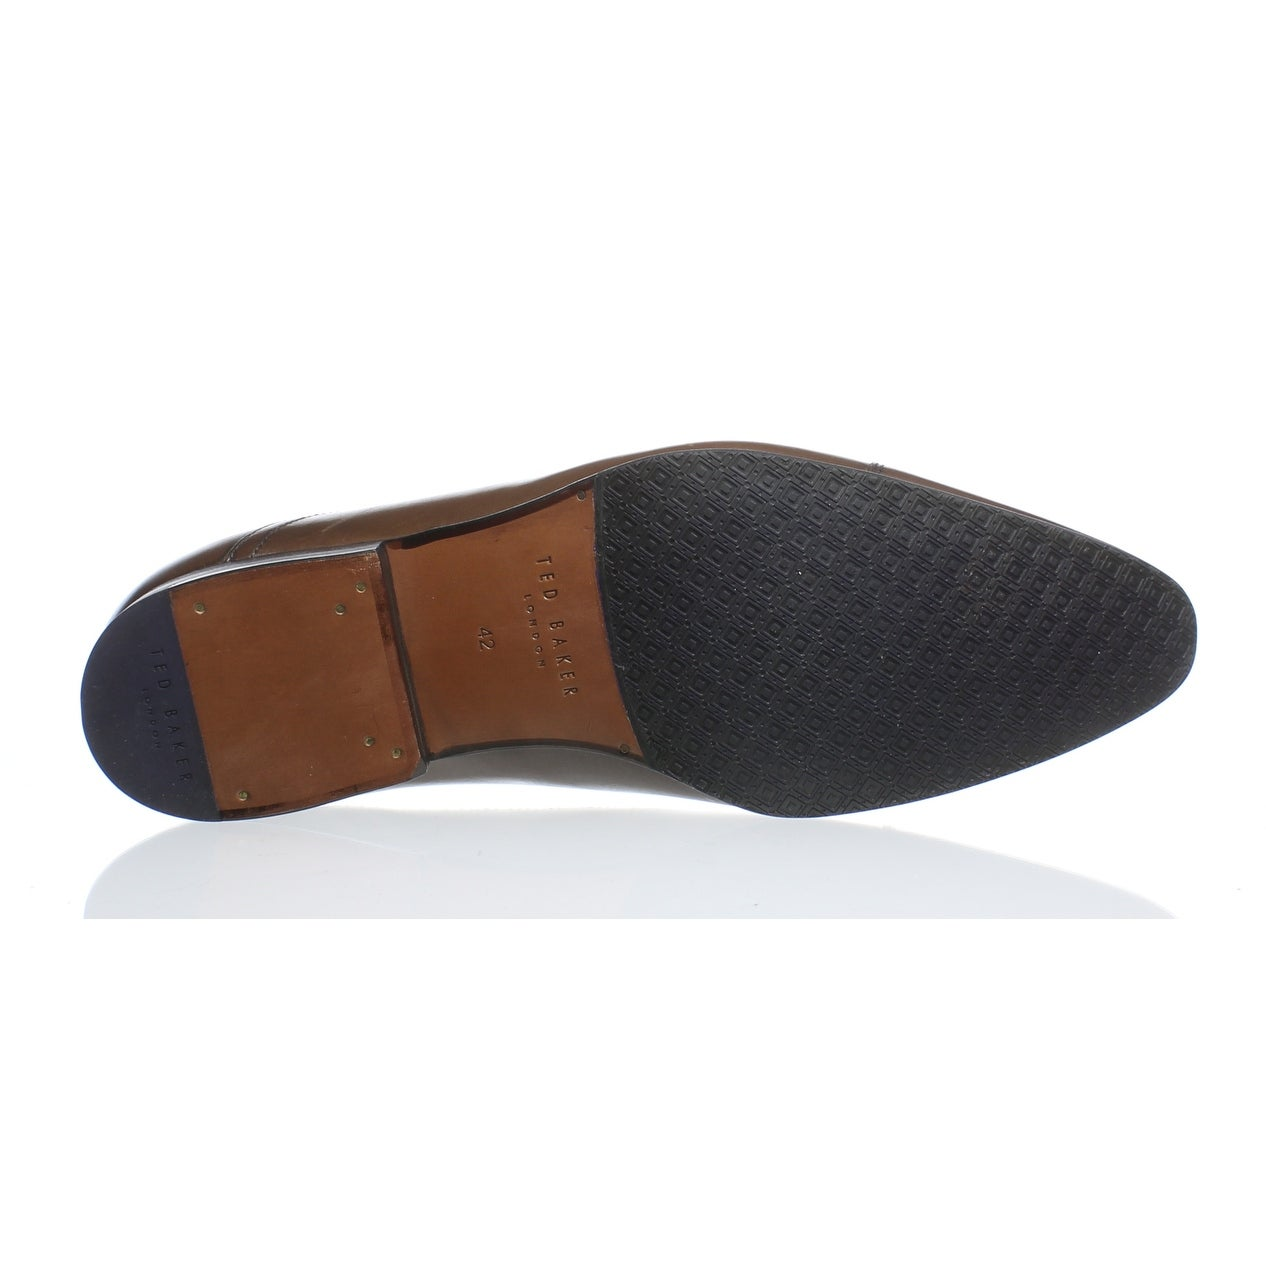 8ce794471a865 Shop Ted Baker Mens Roger 2 Brown Oxford Dress Shoe EUR 42 - Free Shipping  On Orders Over  45 - Overstock.com - 27316455